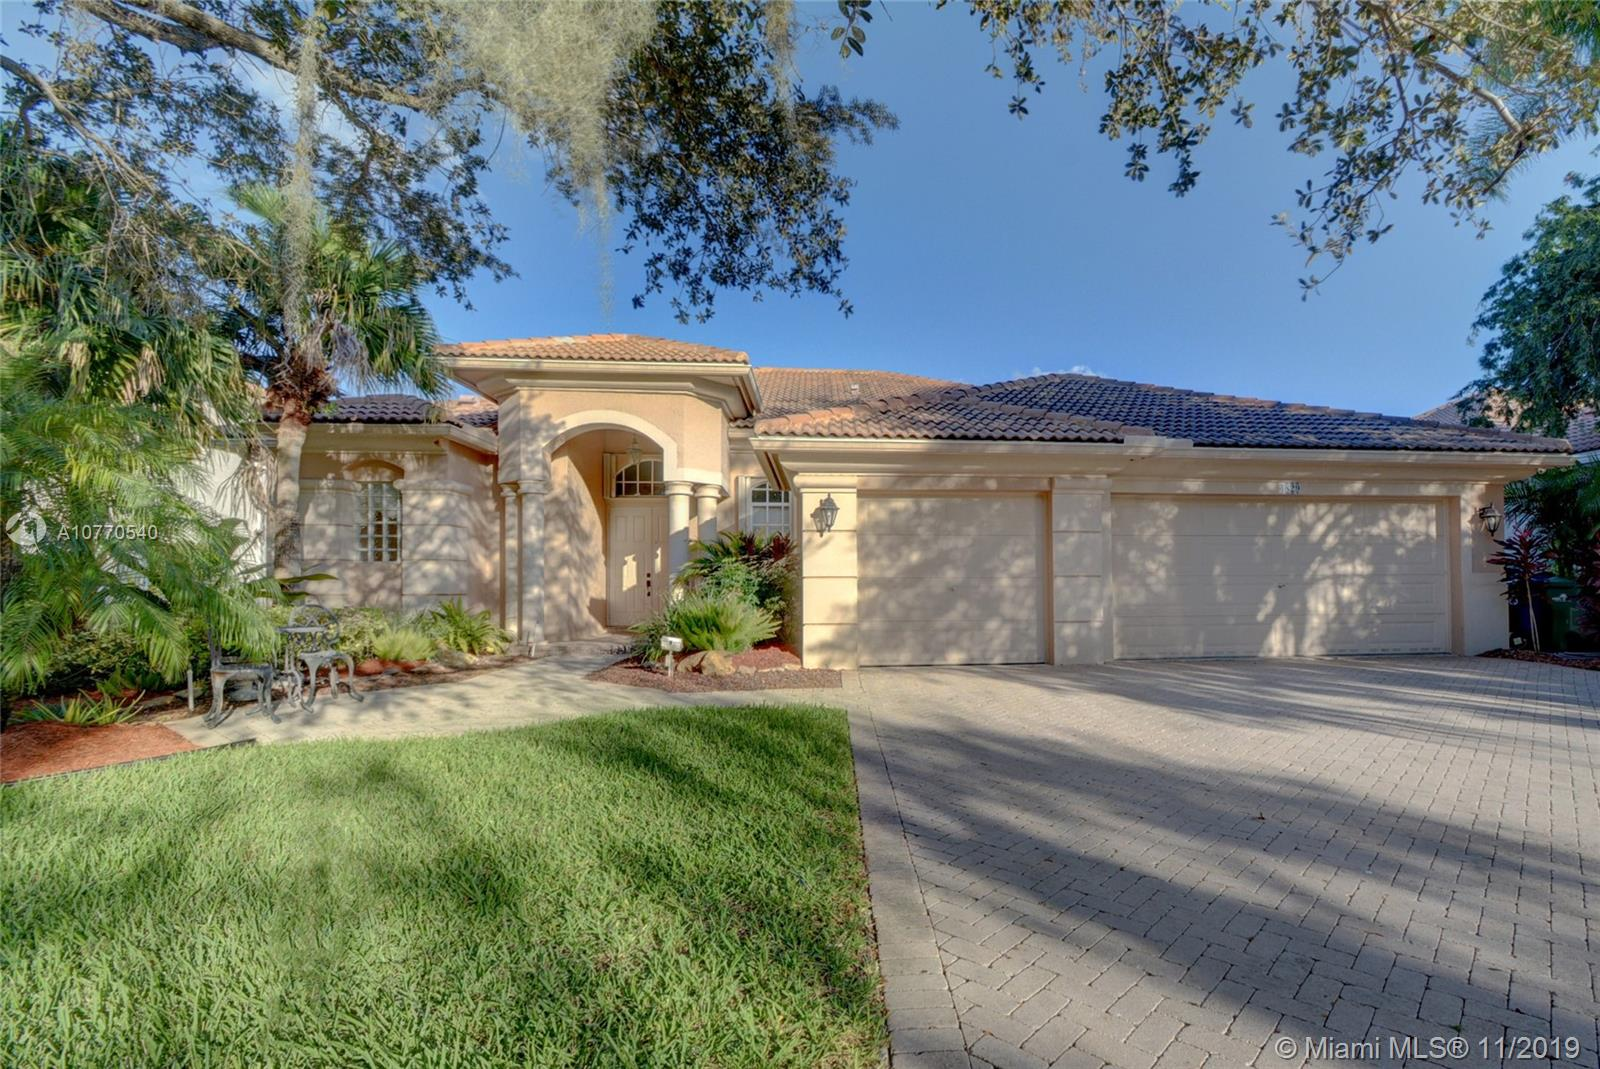 Listing A10770540 - Large Photo # 1